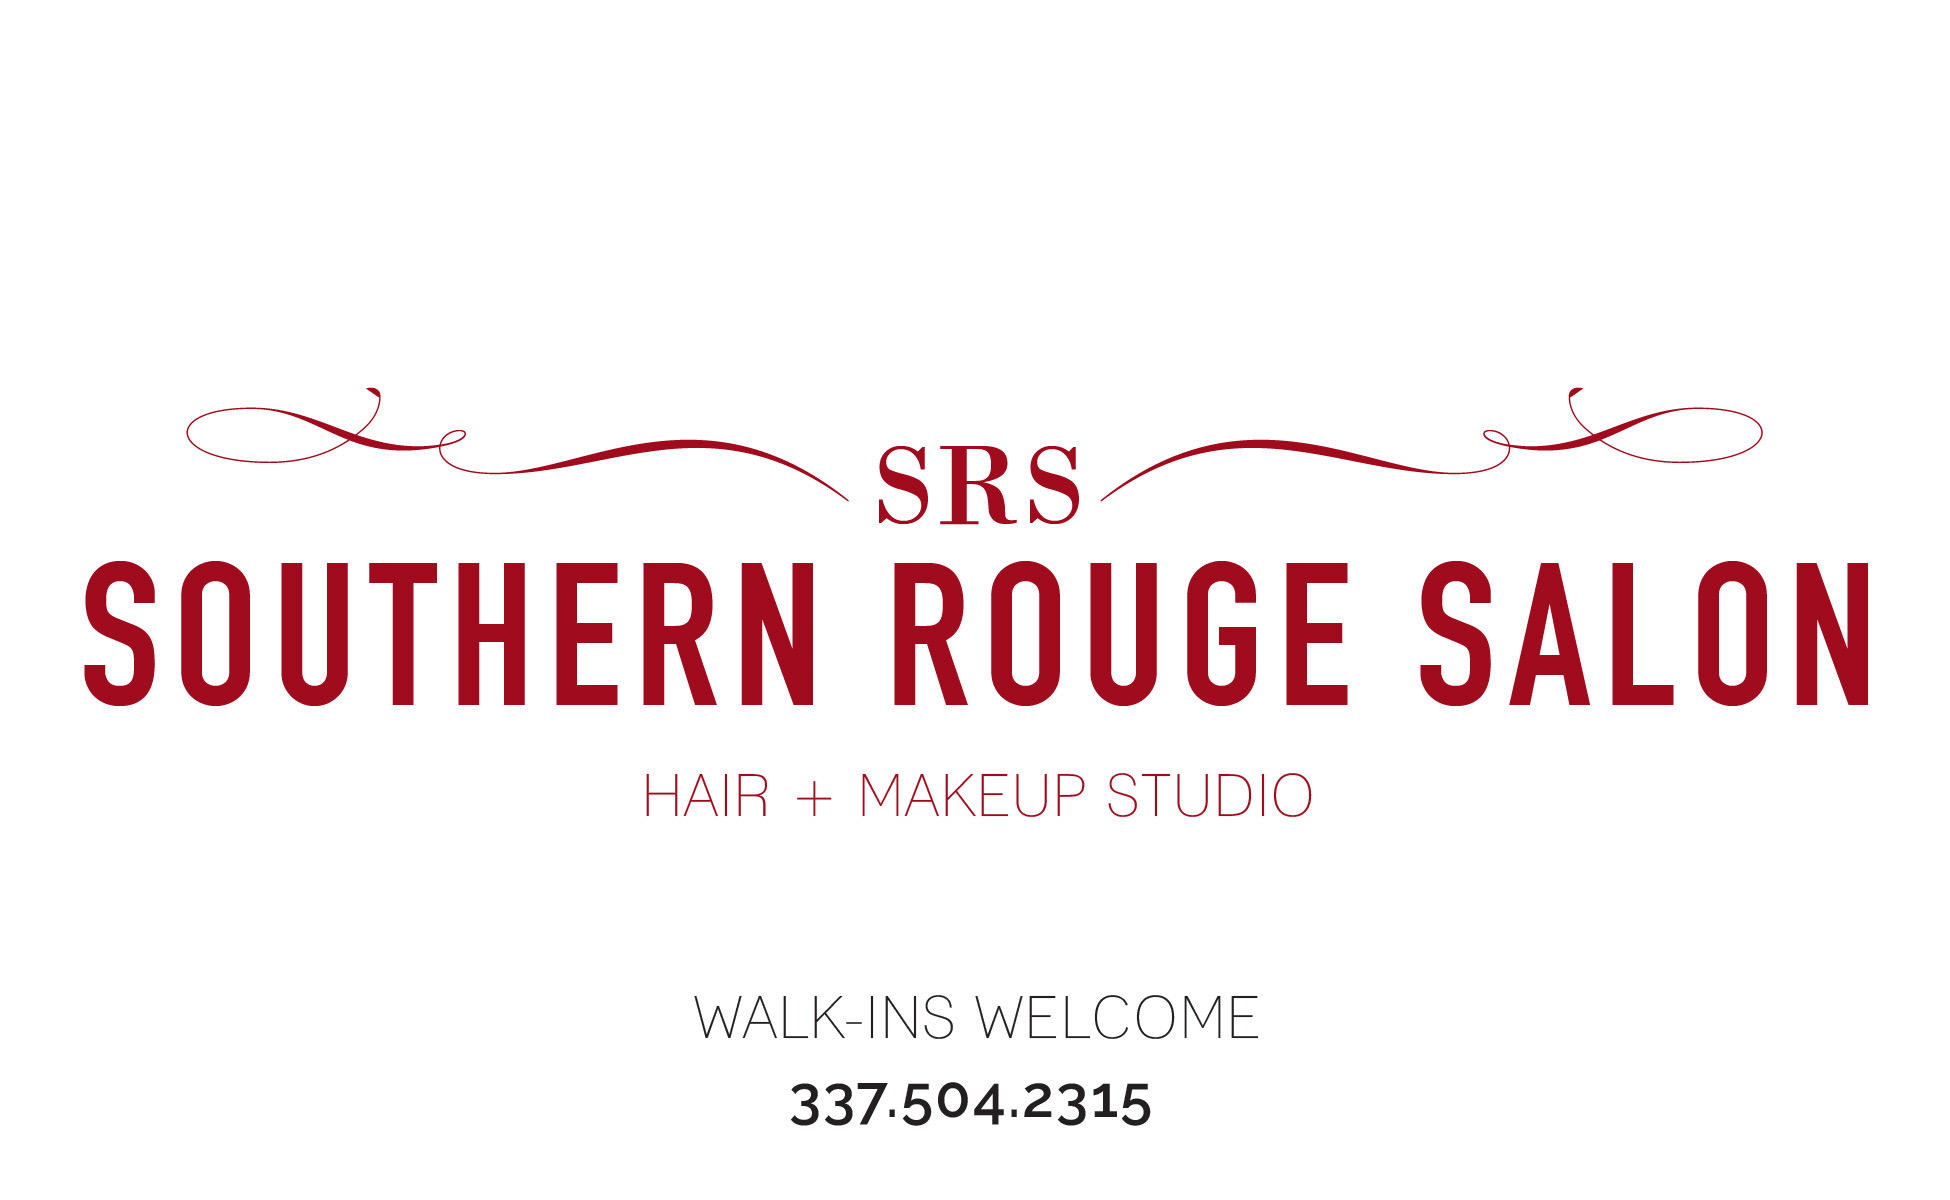 Southern Rouge Salon image 2